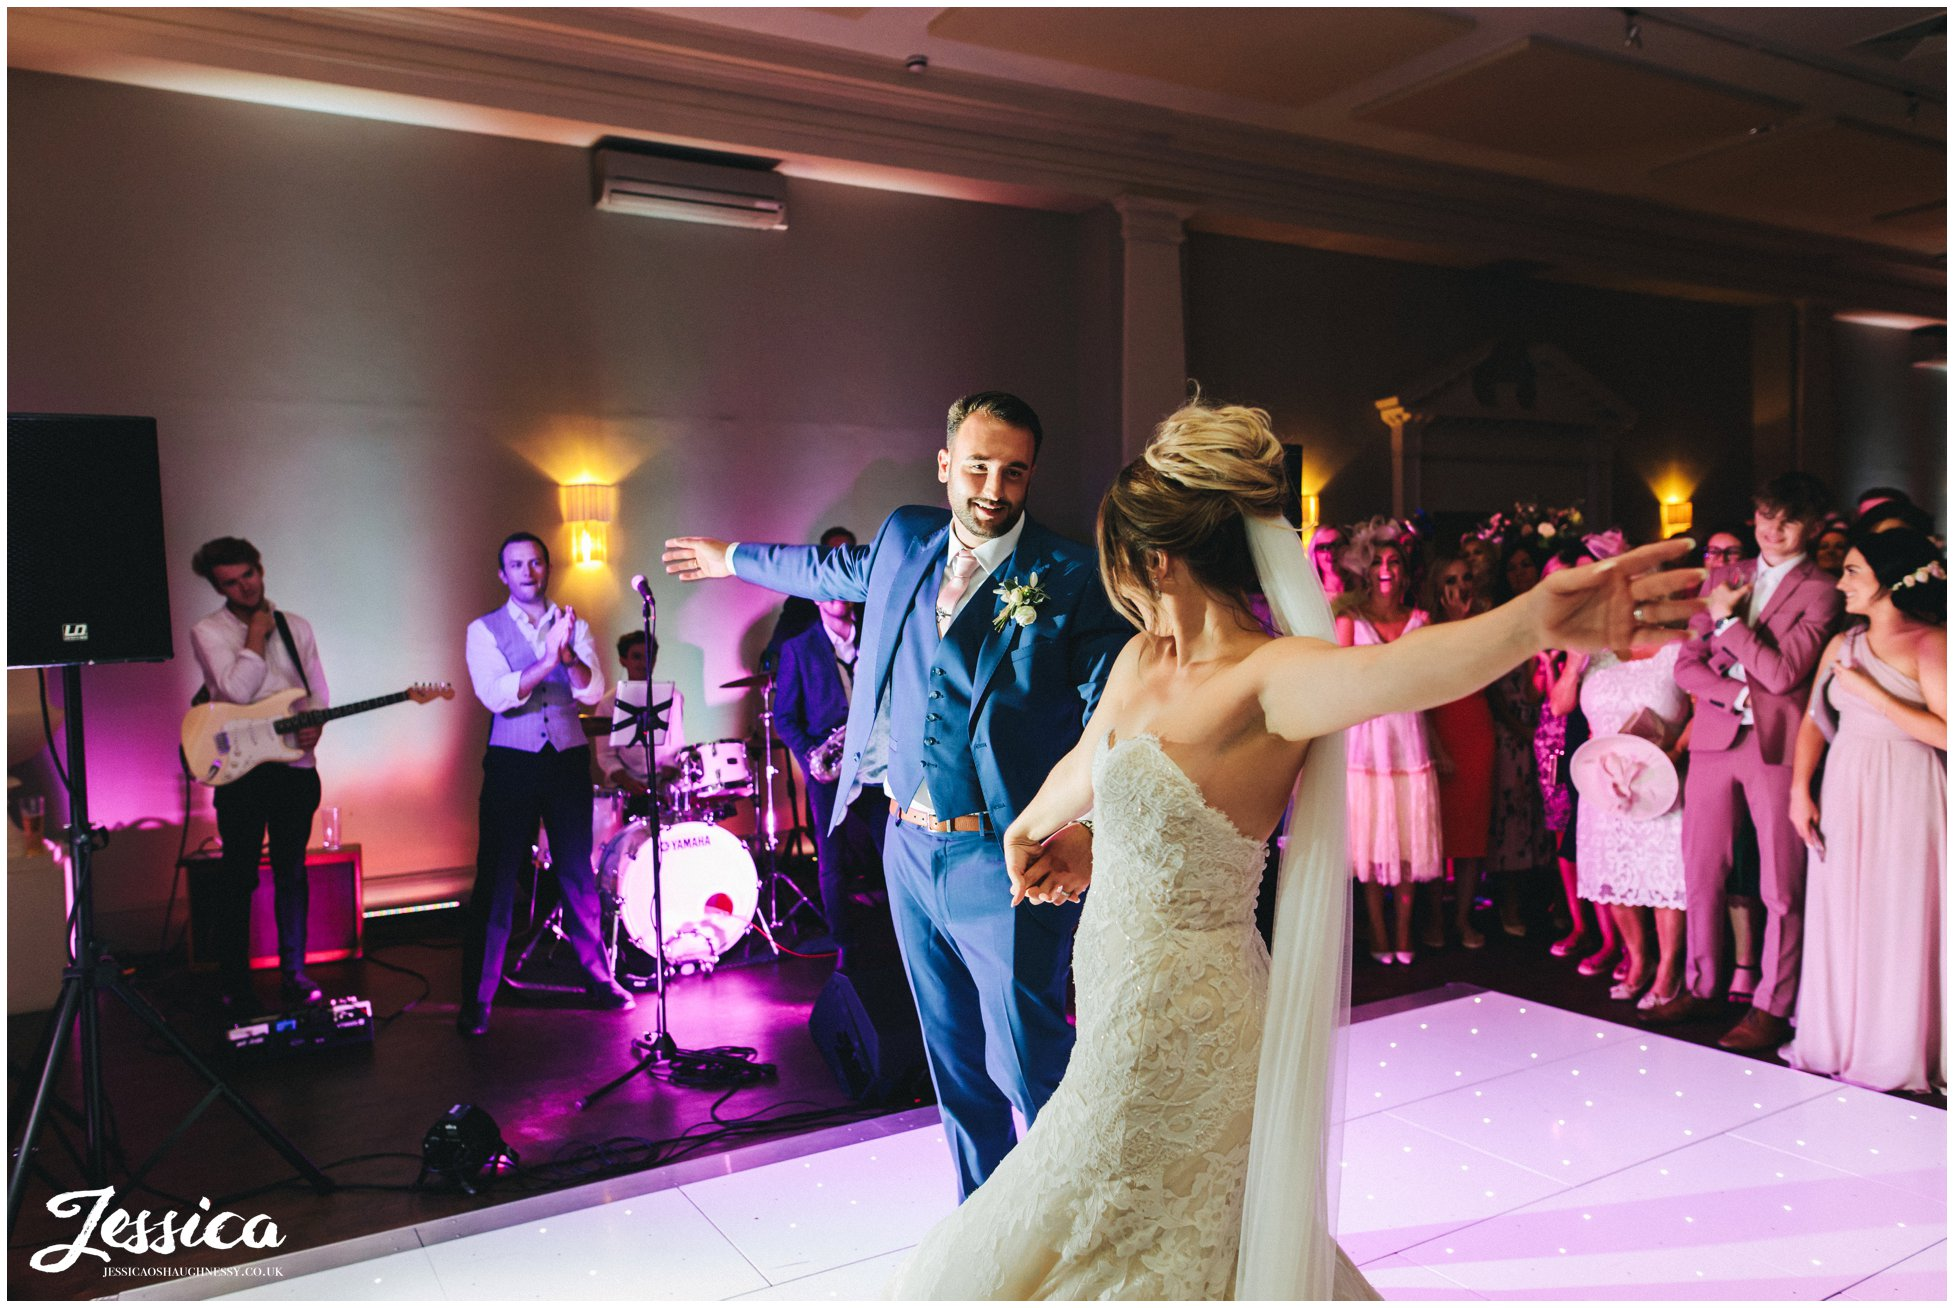 newly wed's share their first dance at stubton hall in newark